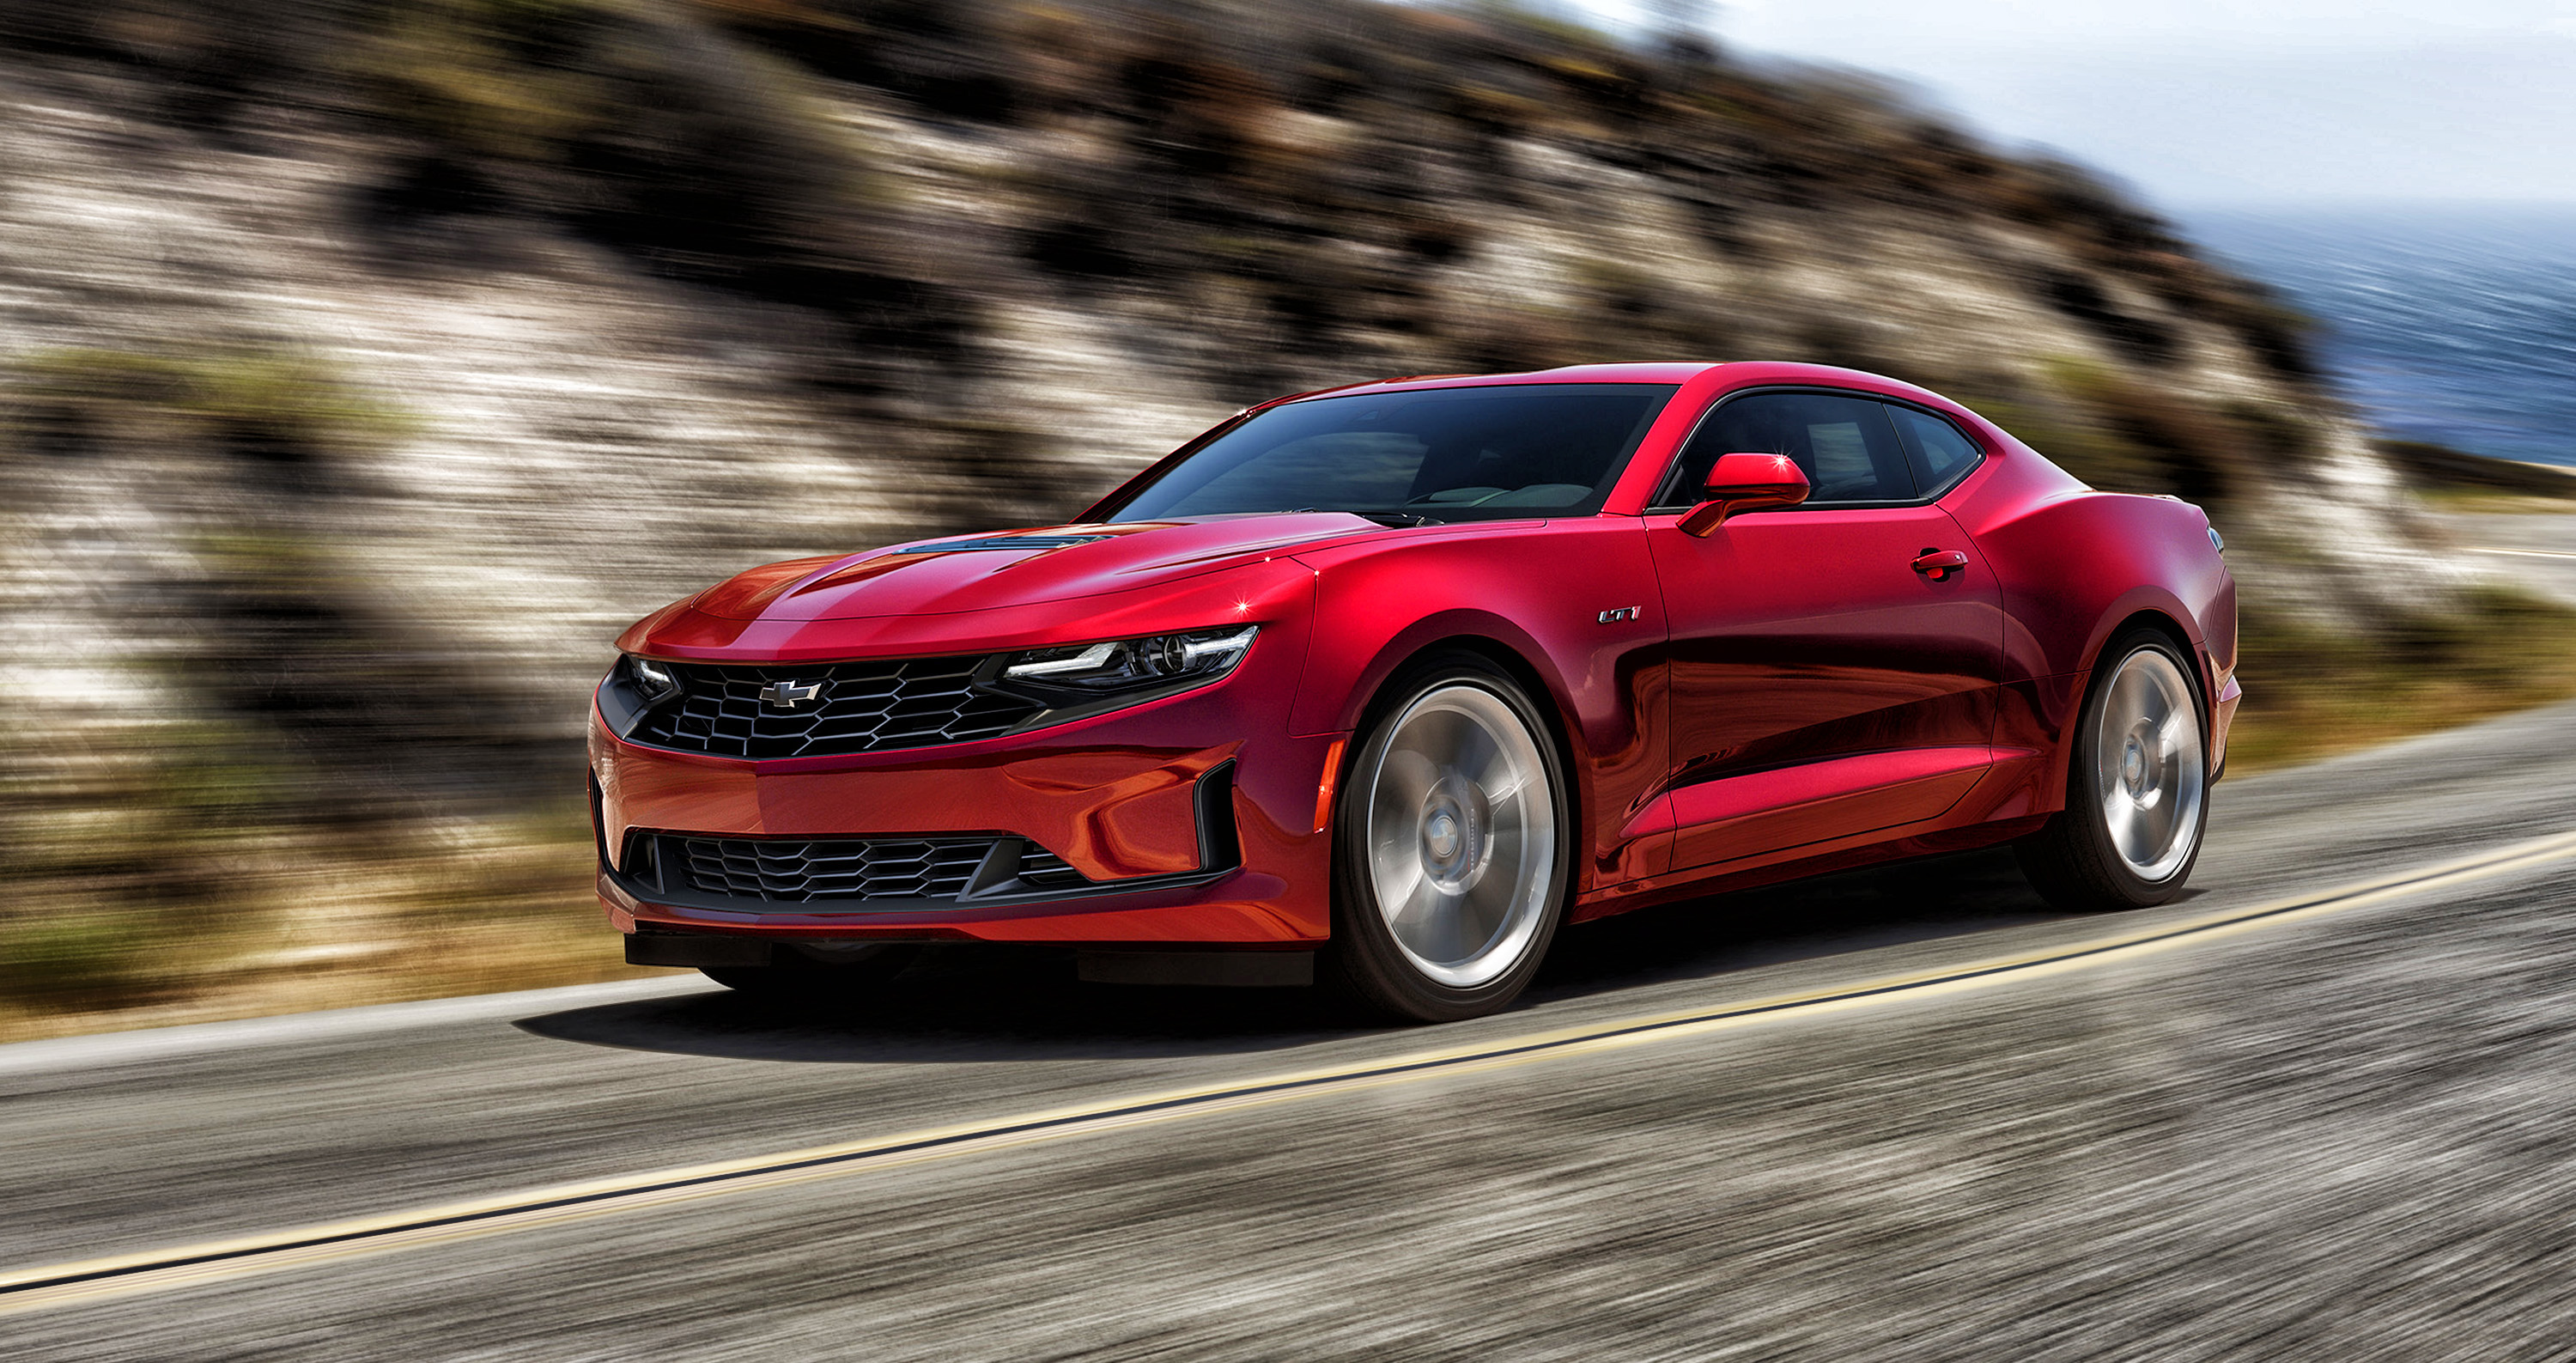 2020 Chevrolet Camaro LT1 Coupe